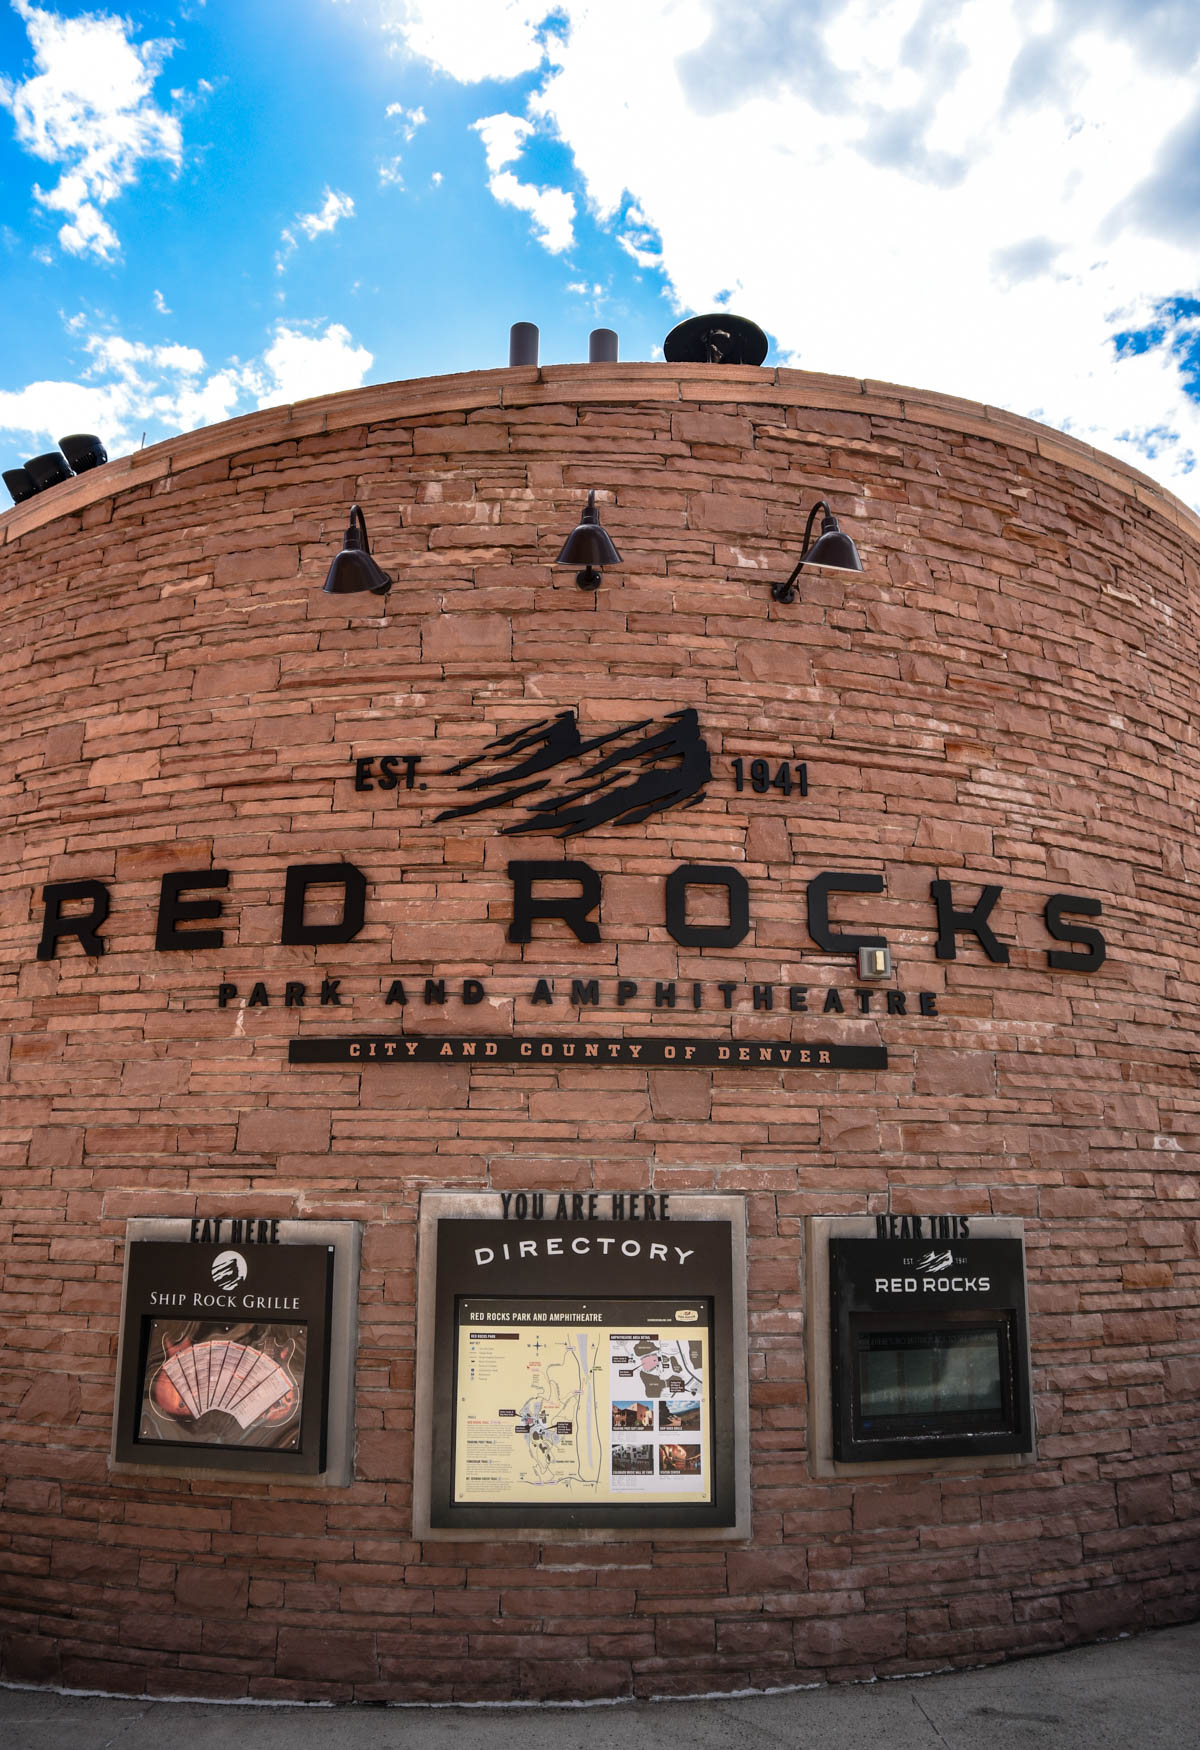 Red Rocks Park and Amphitheatre | Morrison, CO. | 09/05/2019 | Photos: ©Pix Meyers 2019